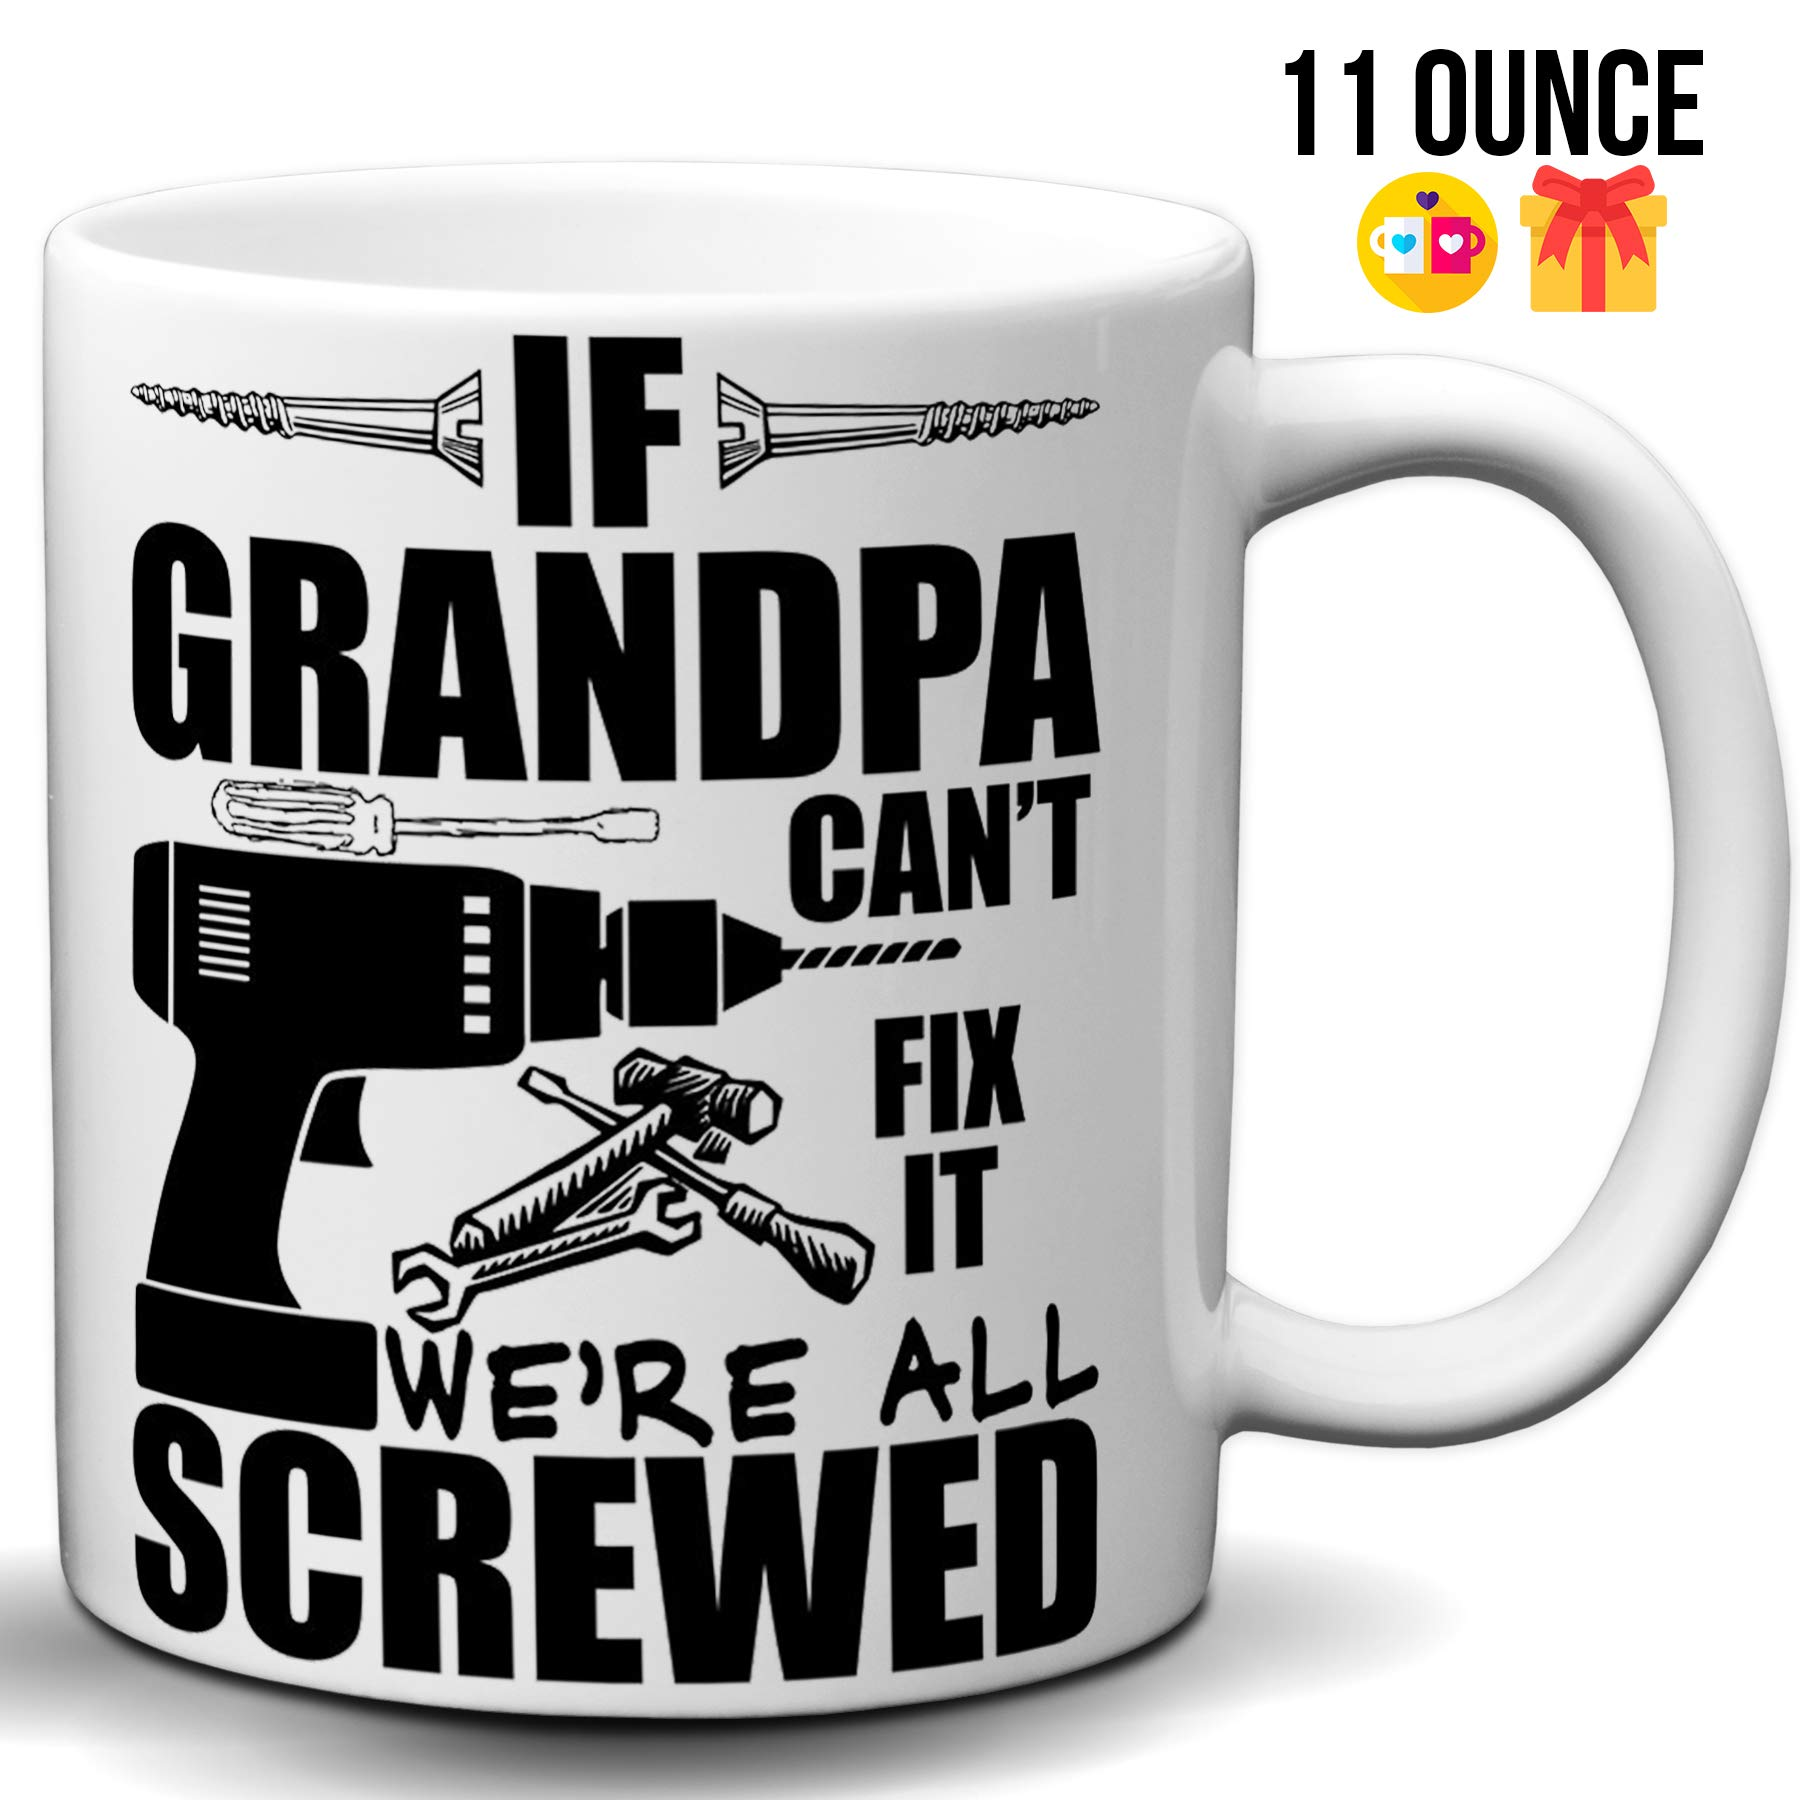 If Grandpa Can't Fix It We're All Screwed Funny 11 Oz Coffee Mug Great Gift for Fathers Day Gift for Dad, Grandpa, Husband From Son, Papa Fathers Day Gift from Son and Daughter Funny Grandpa Mug by Hot Ass Tees (Image #1)